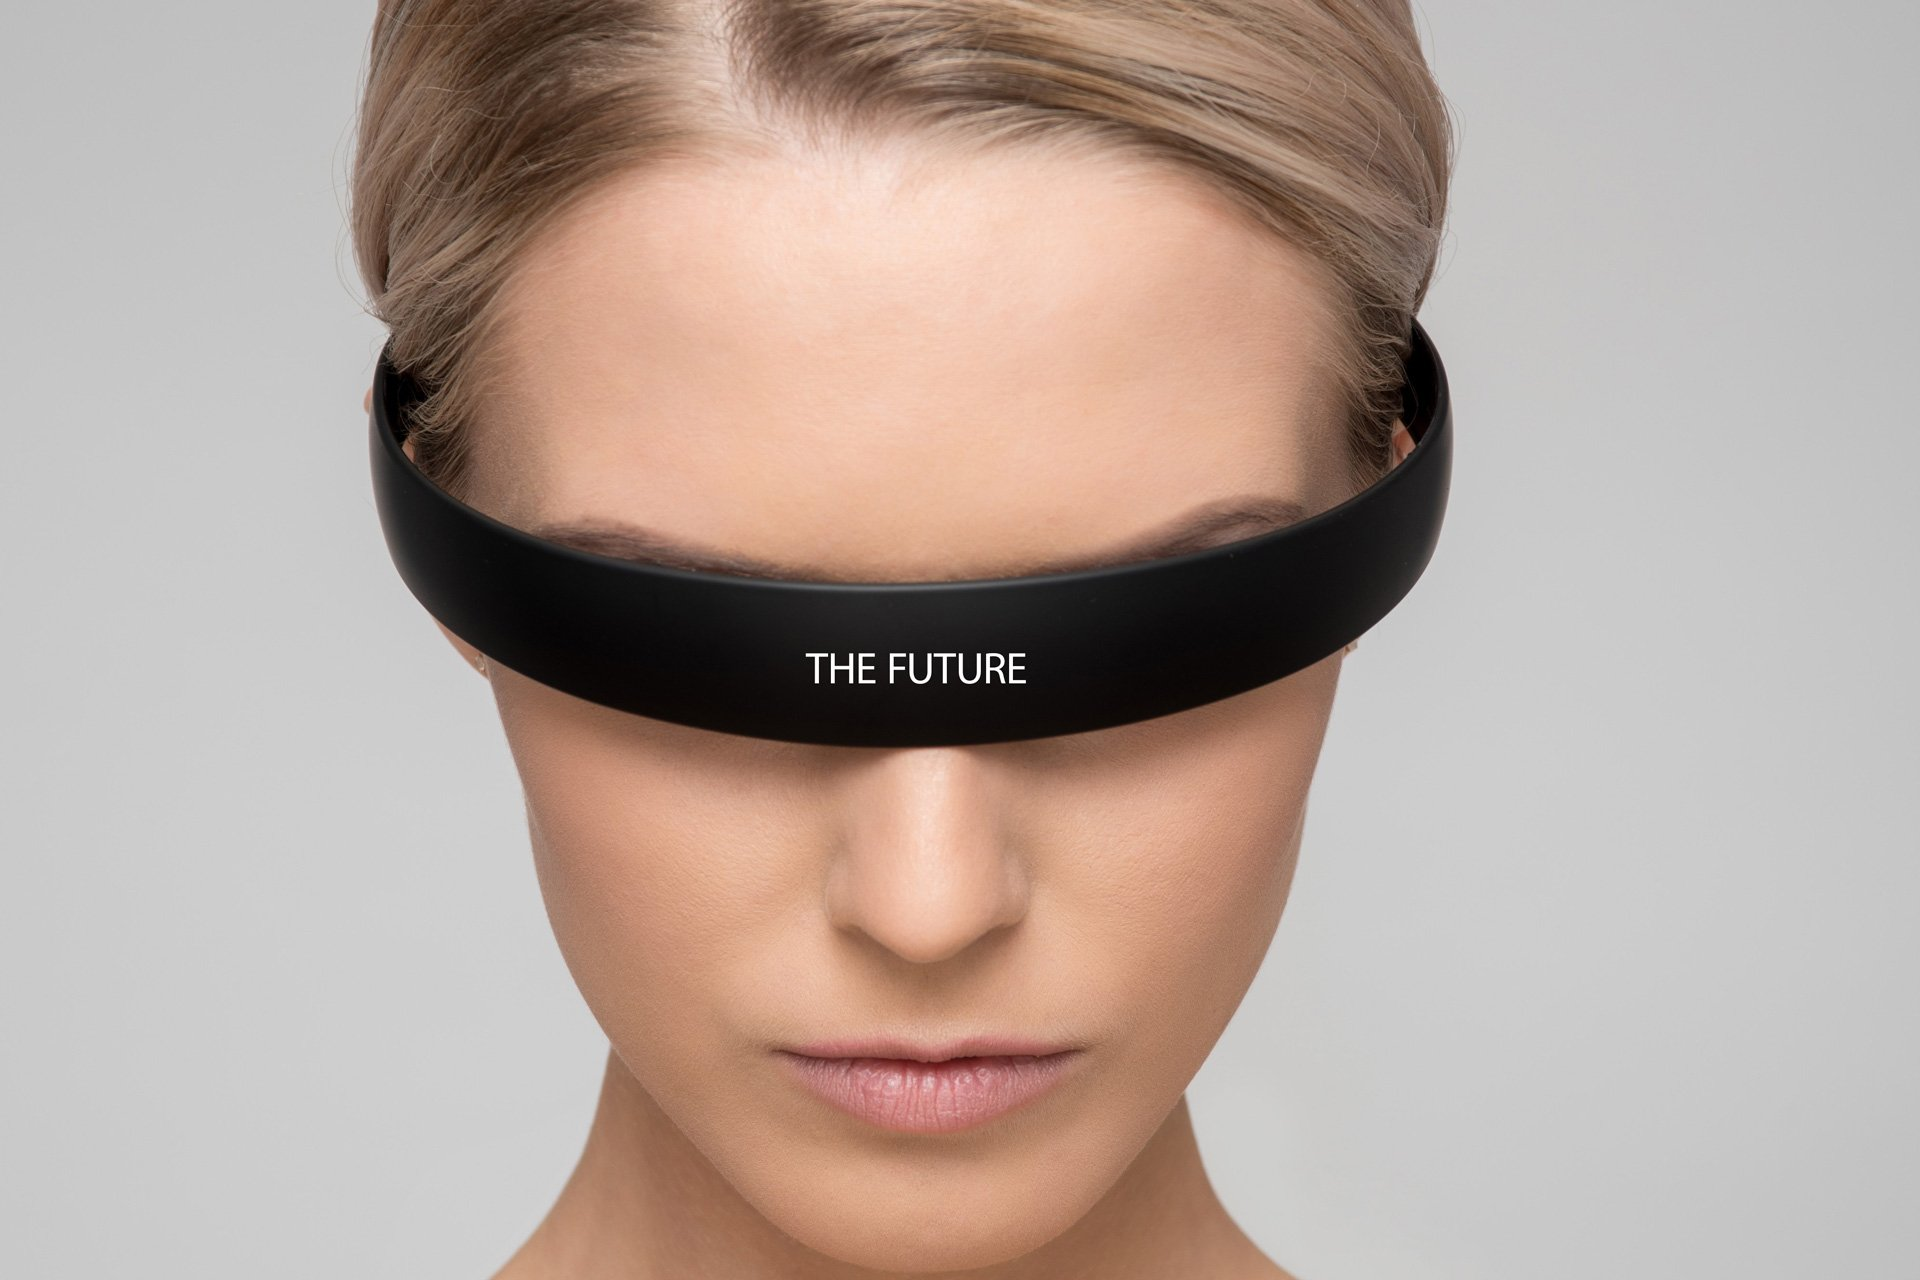 Image of a woman representing artificial intelligence with the future written on her eyewear.